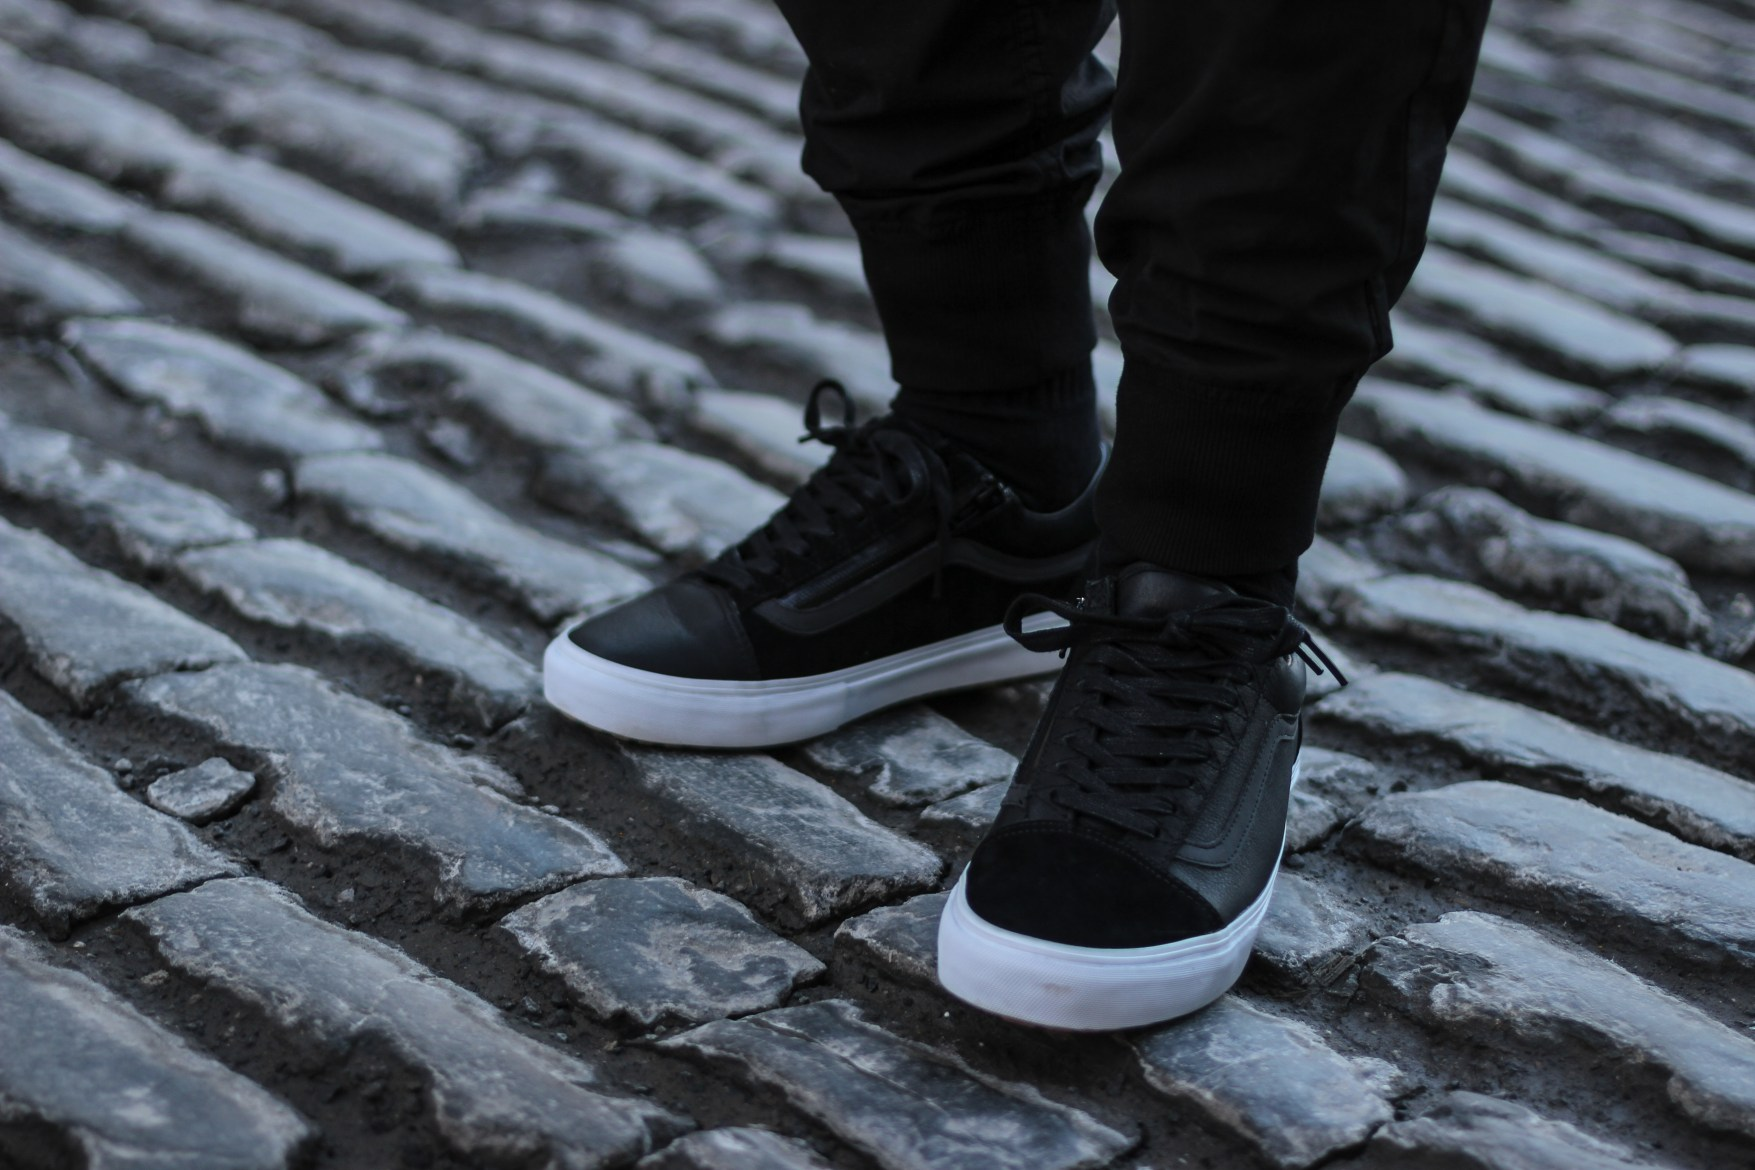 the-raised-by-wolves-x-oth-x-vans-pack-is-fit-for-bracing-the-elements-3.jpg